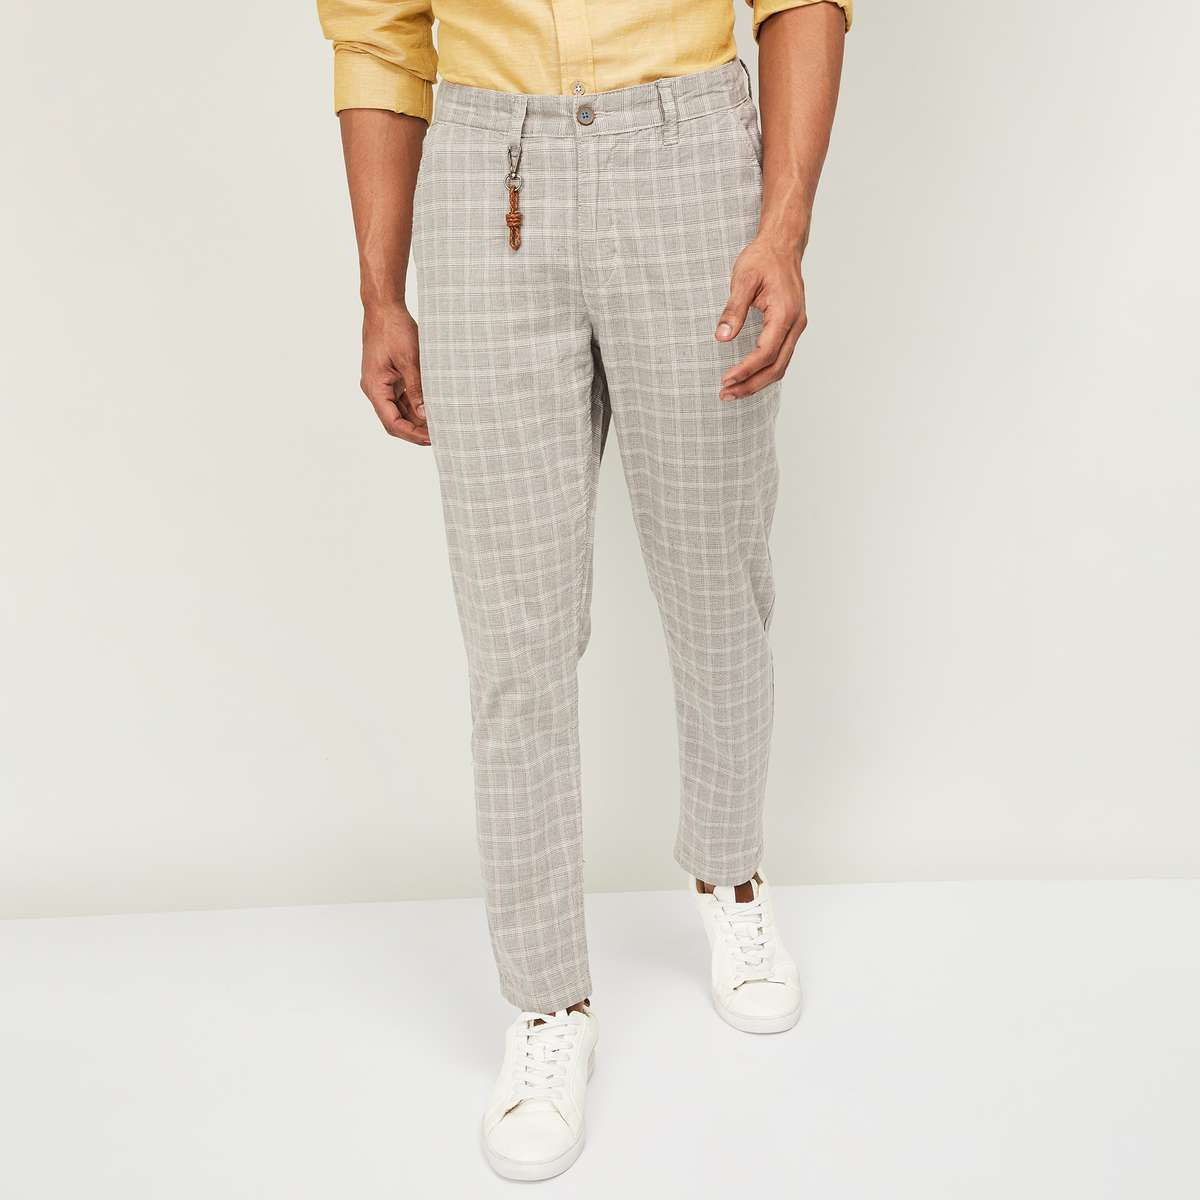 9-CODE Men Checked Slim Tapered Casual Trousers